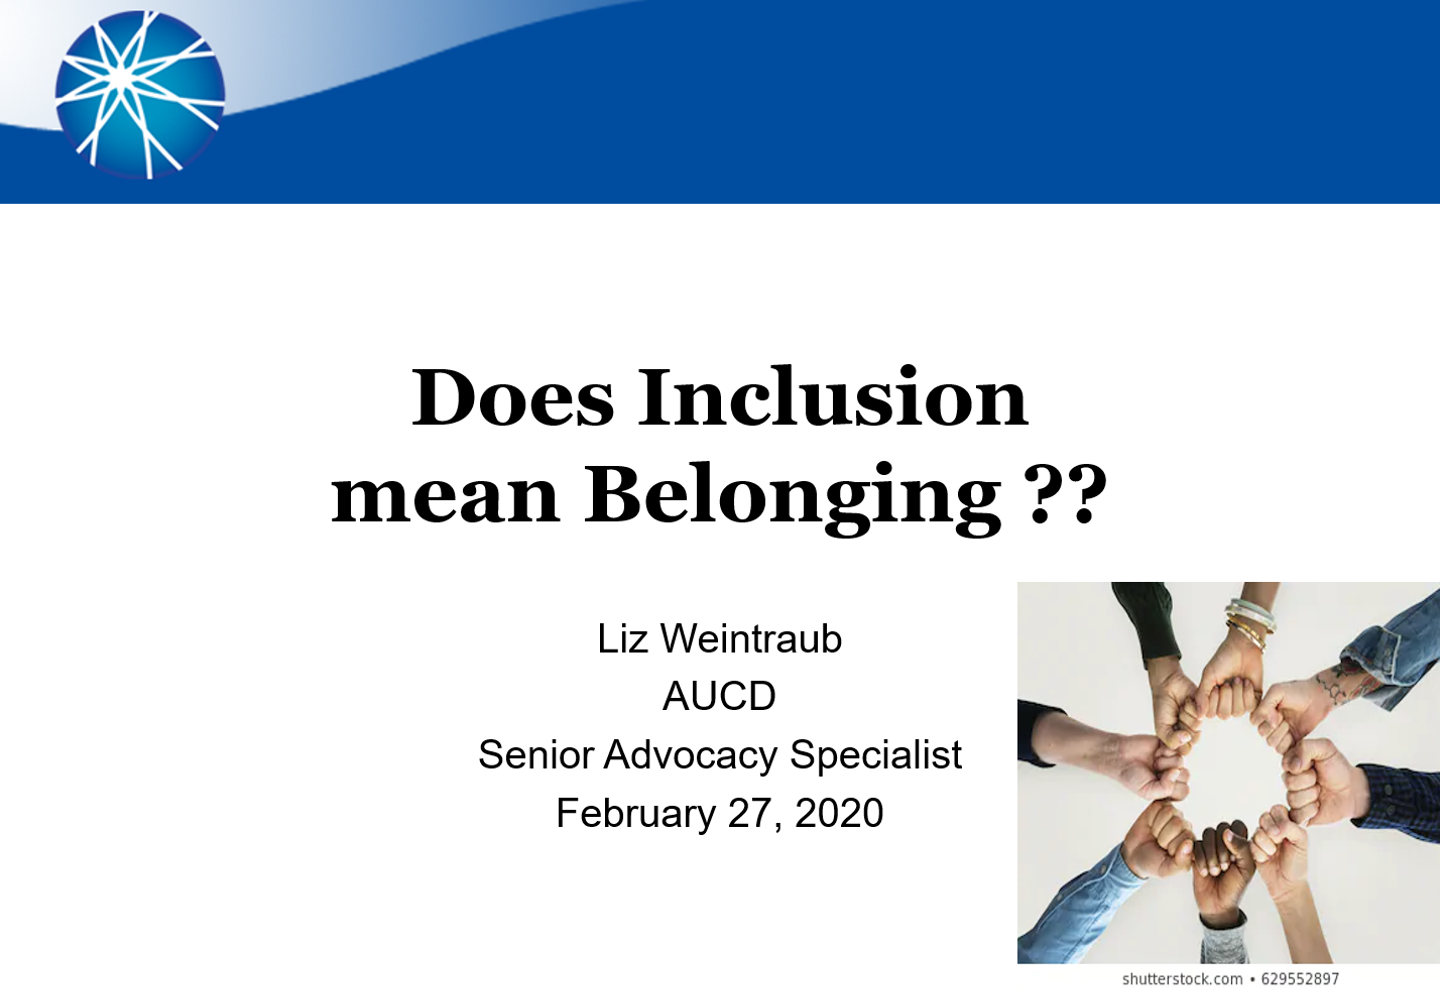 PowerPoint slide that reads 'Does inclusion mean belonging? Liz Weintraub, AUCD'